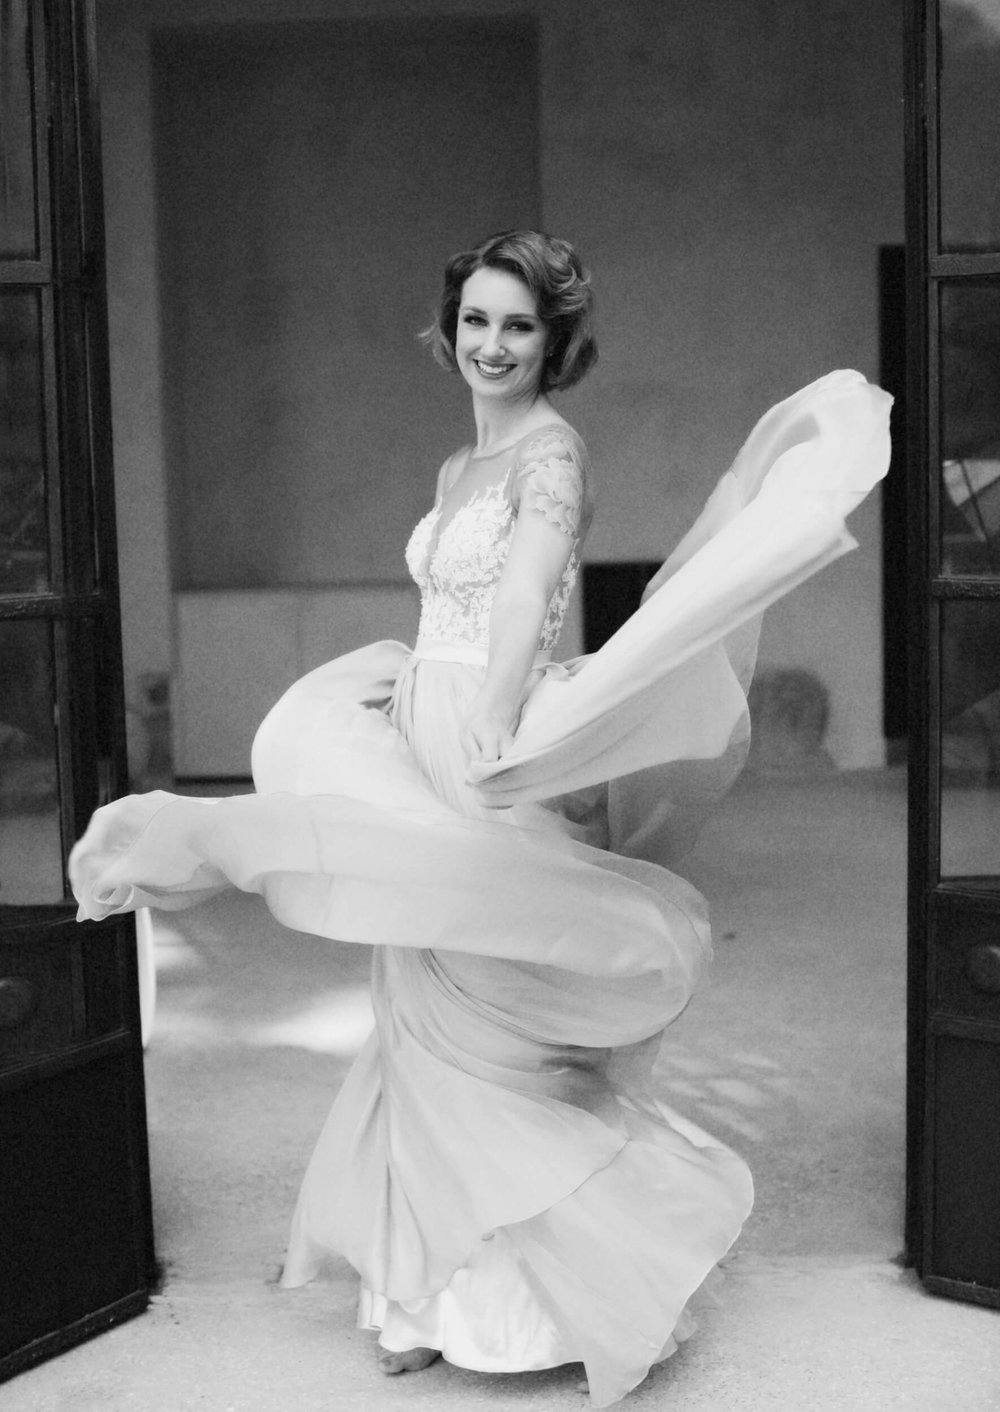 Portrait of lady dancing in dress swirling around her body